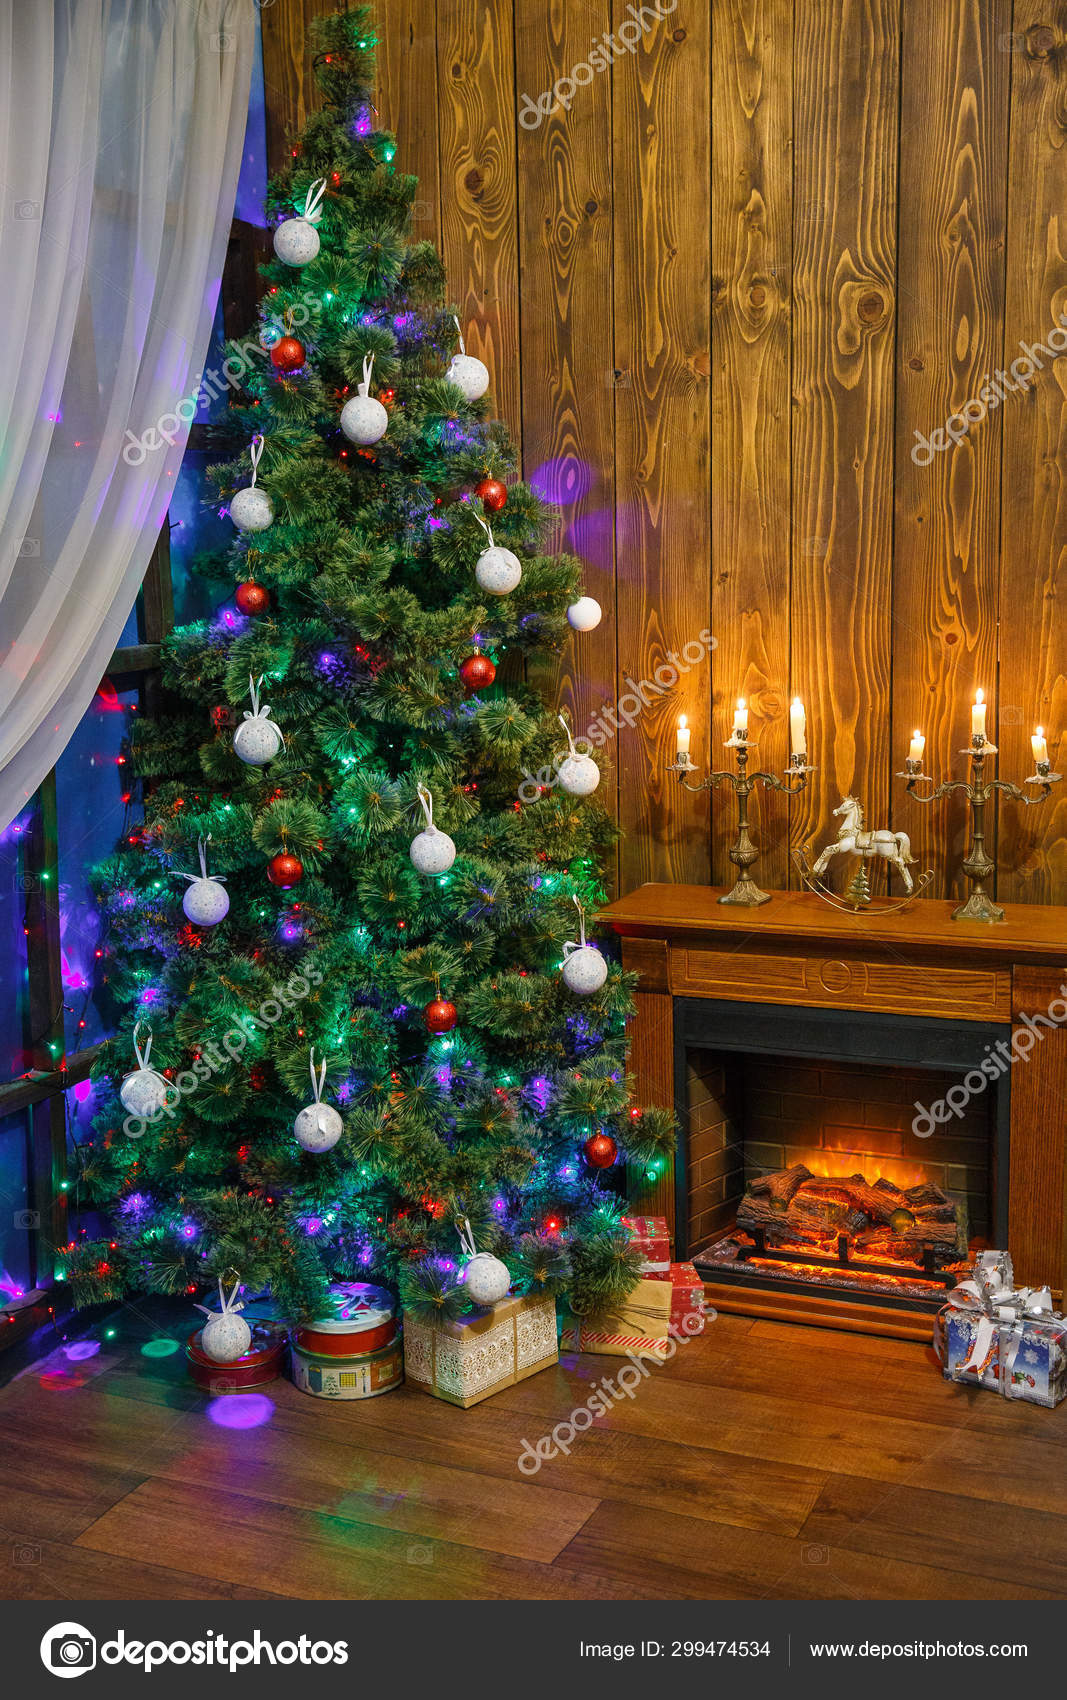 Christmas Interior With Toys And Lots Of Candles Wooden Fake Fireplace Christmas Tree Boxes In Studio Stock Photo C Petrenkoalyona 299474534